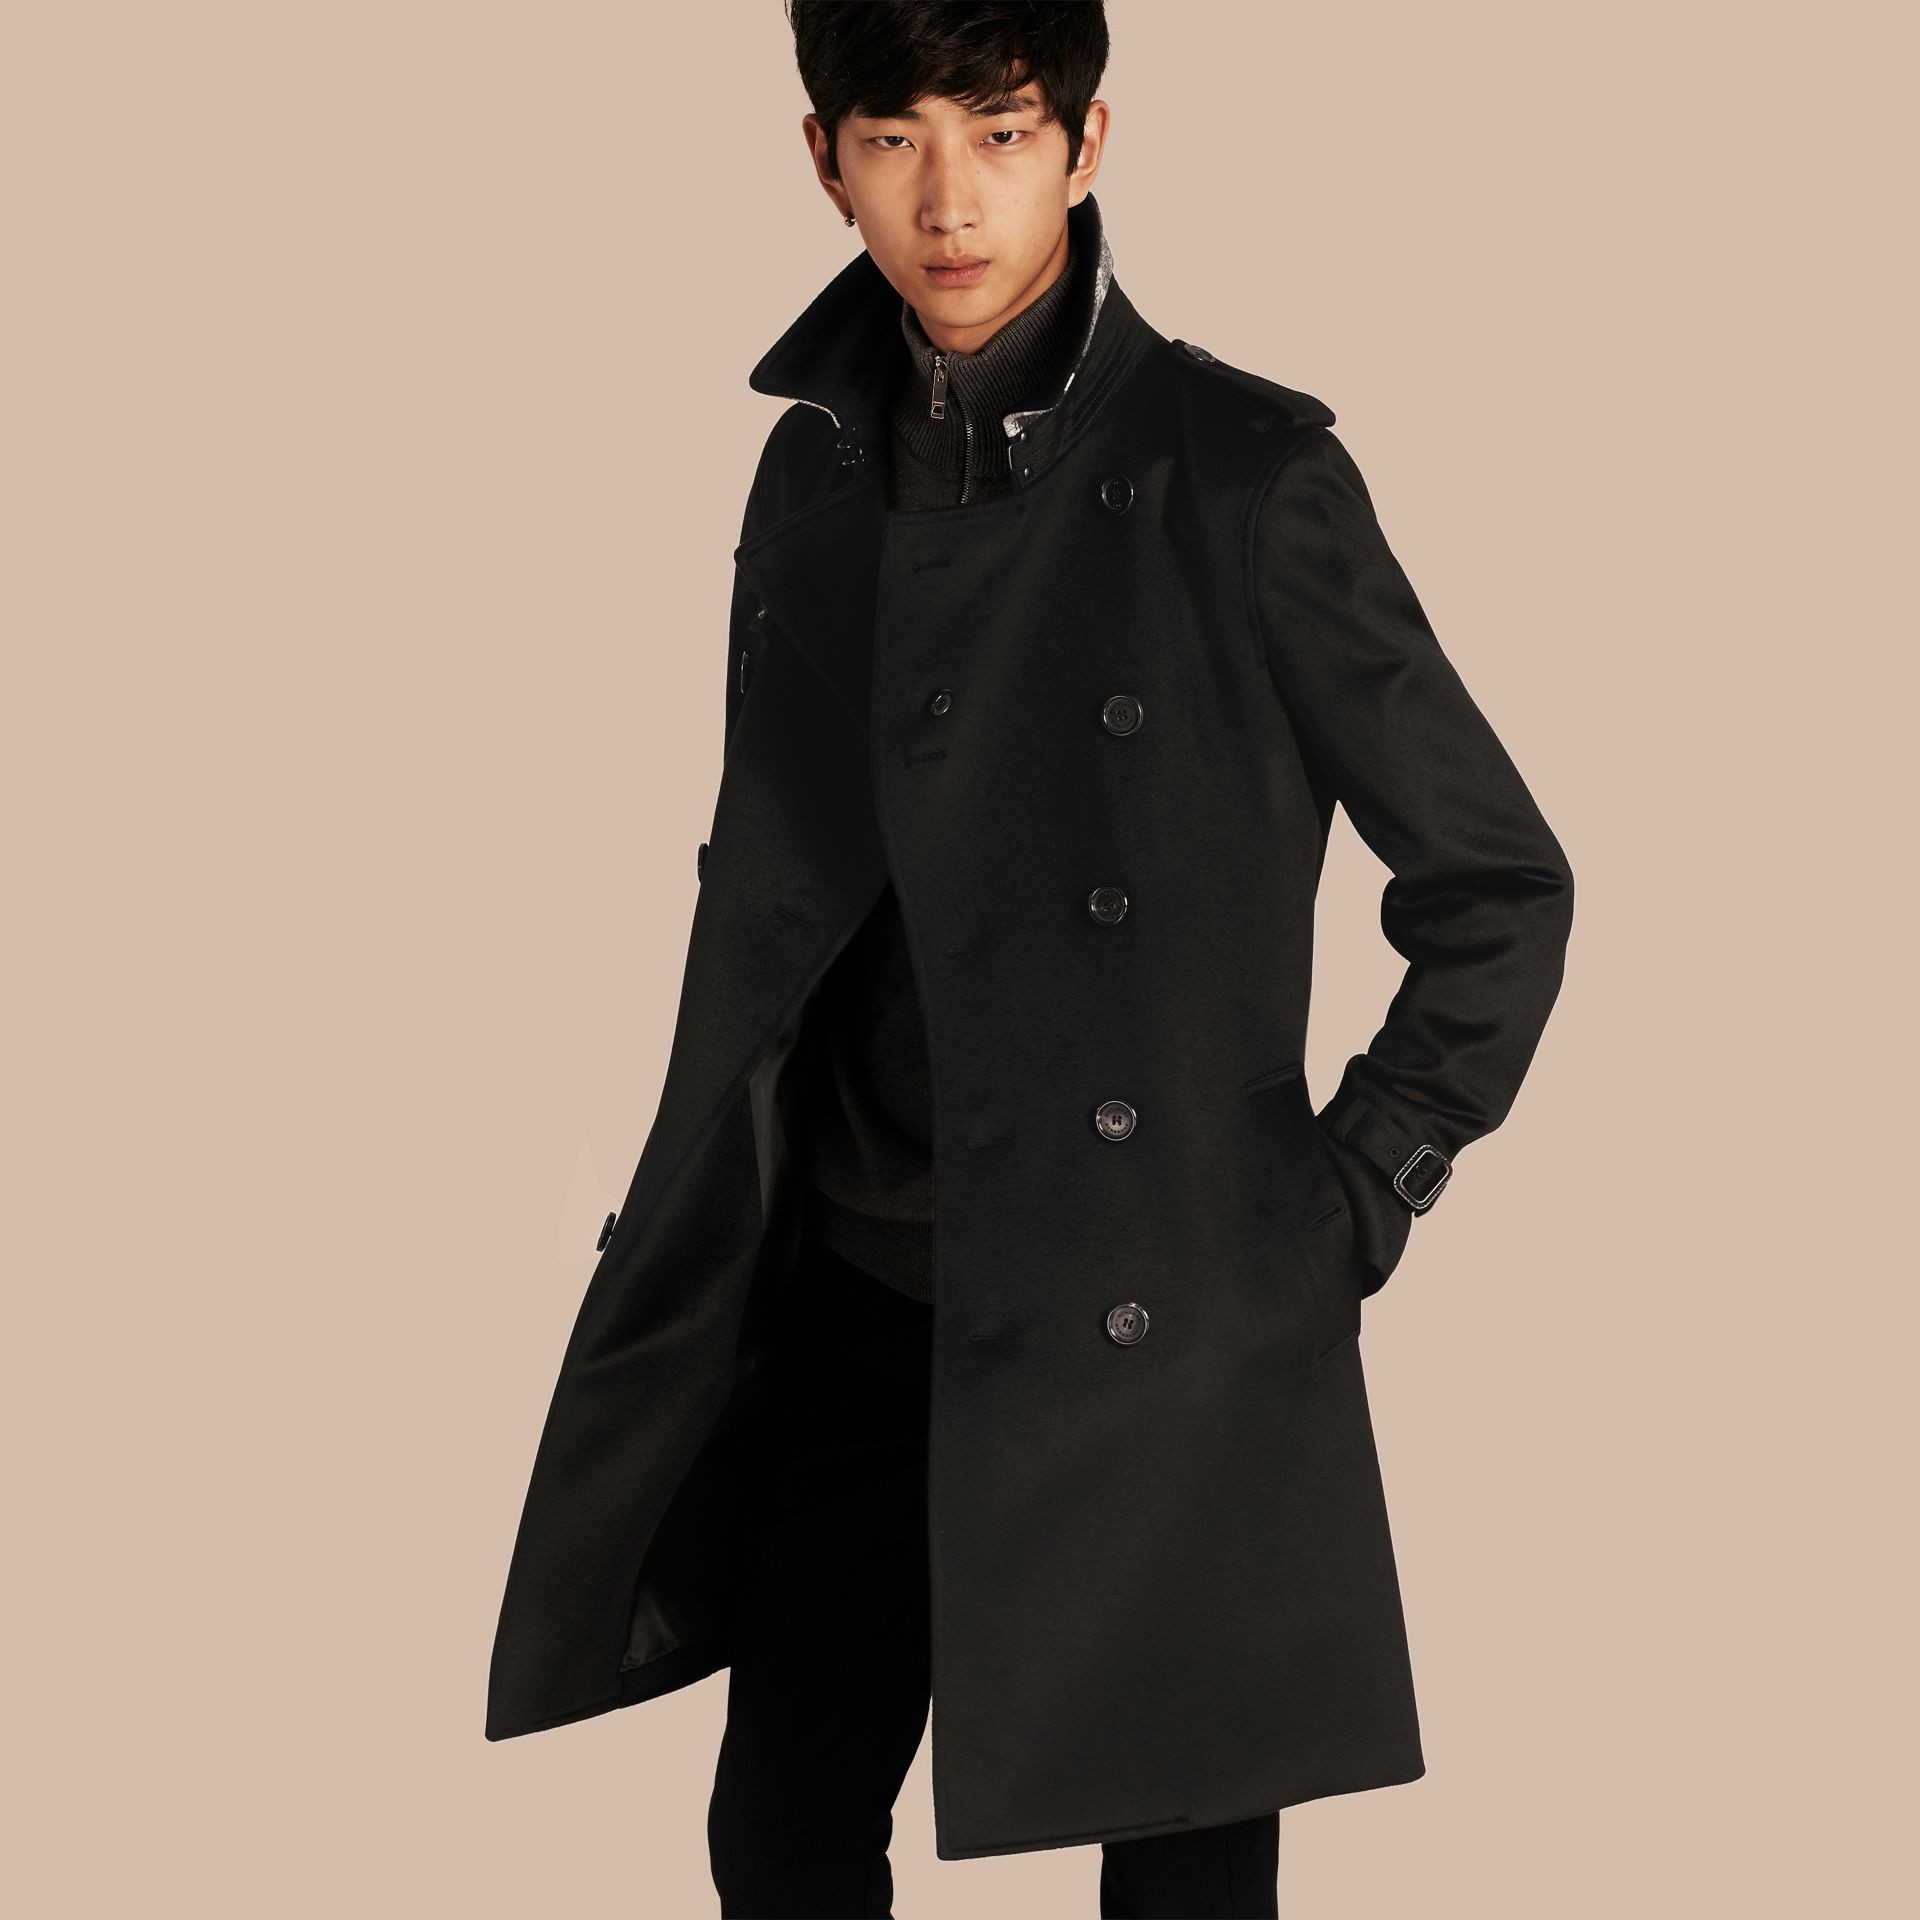 Cashmere Trench Coat in Black - Men | Burberry - gallery image 1